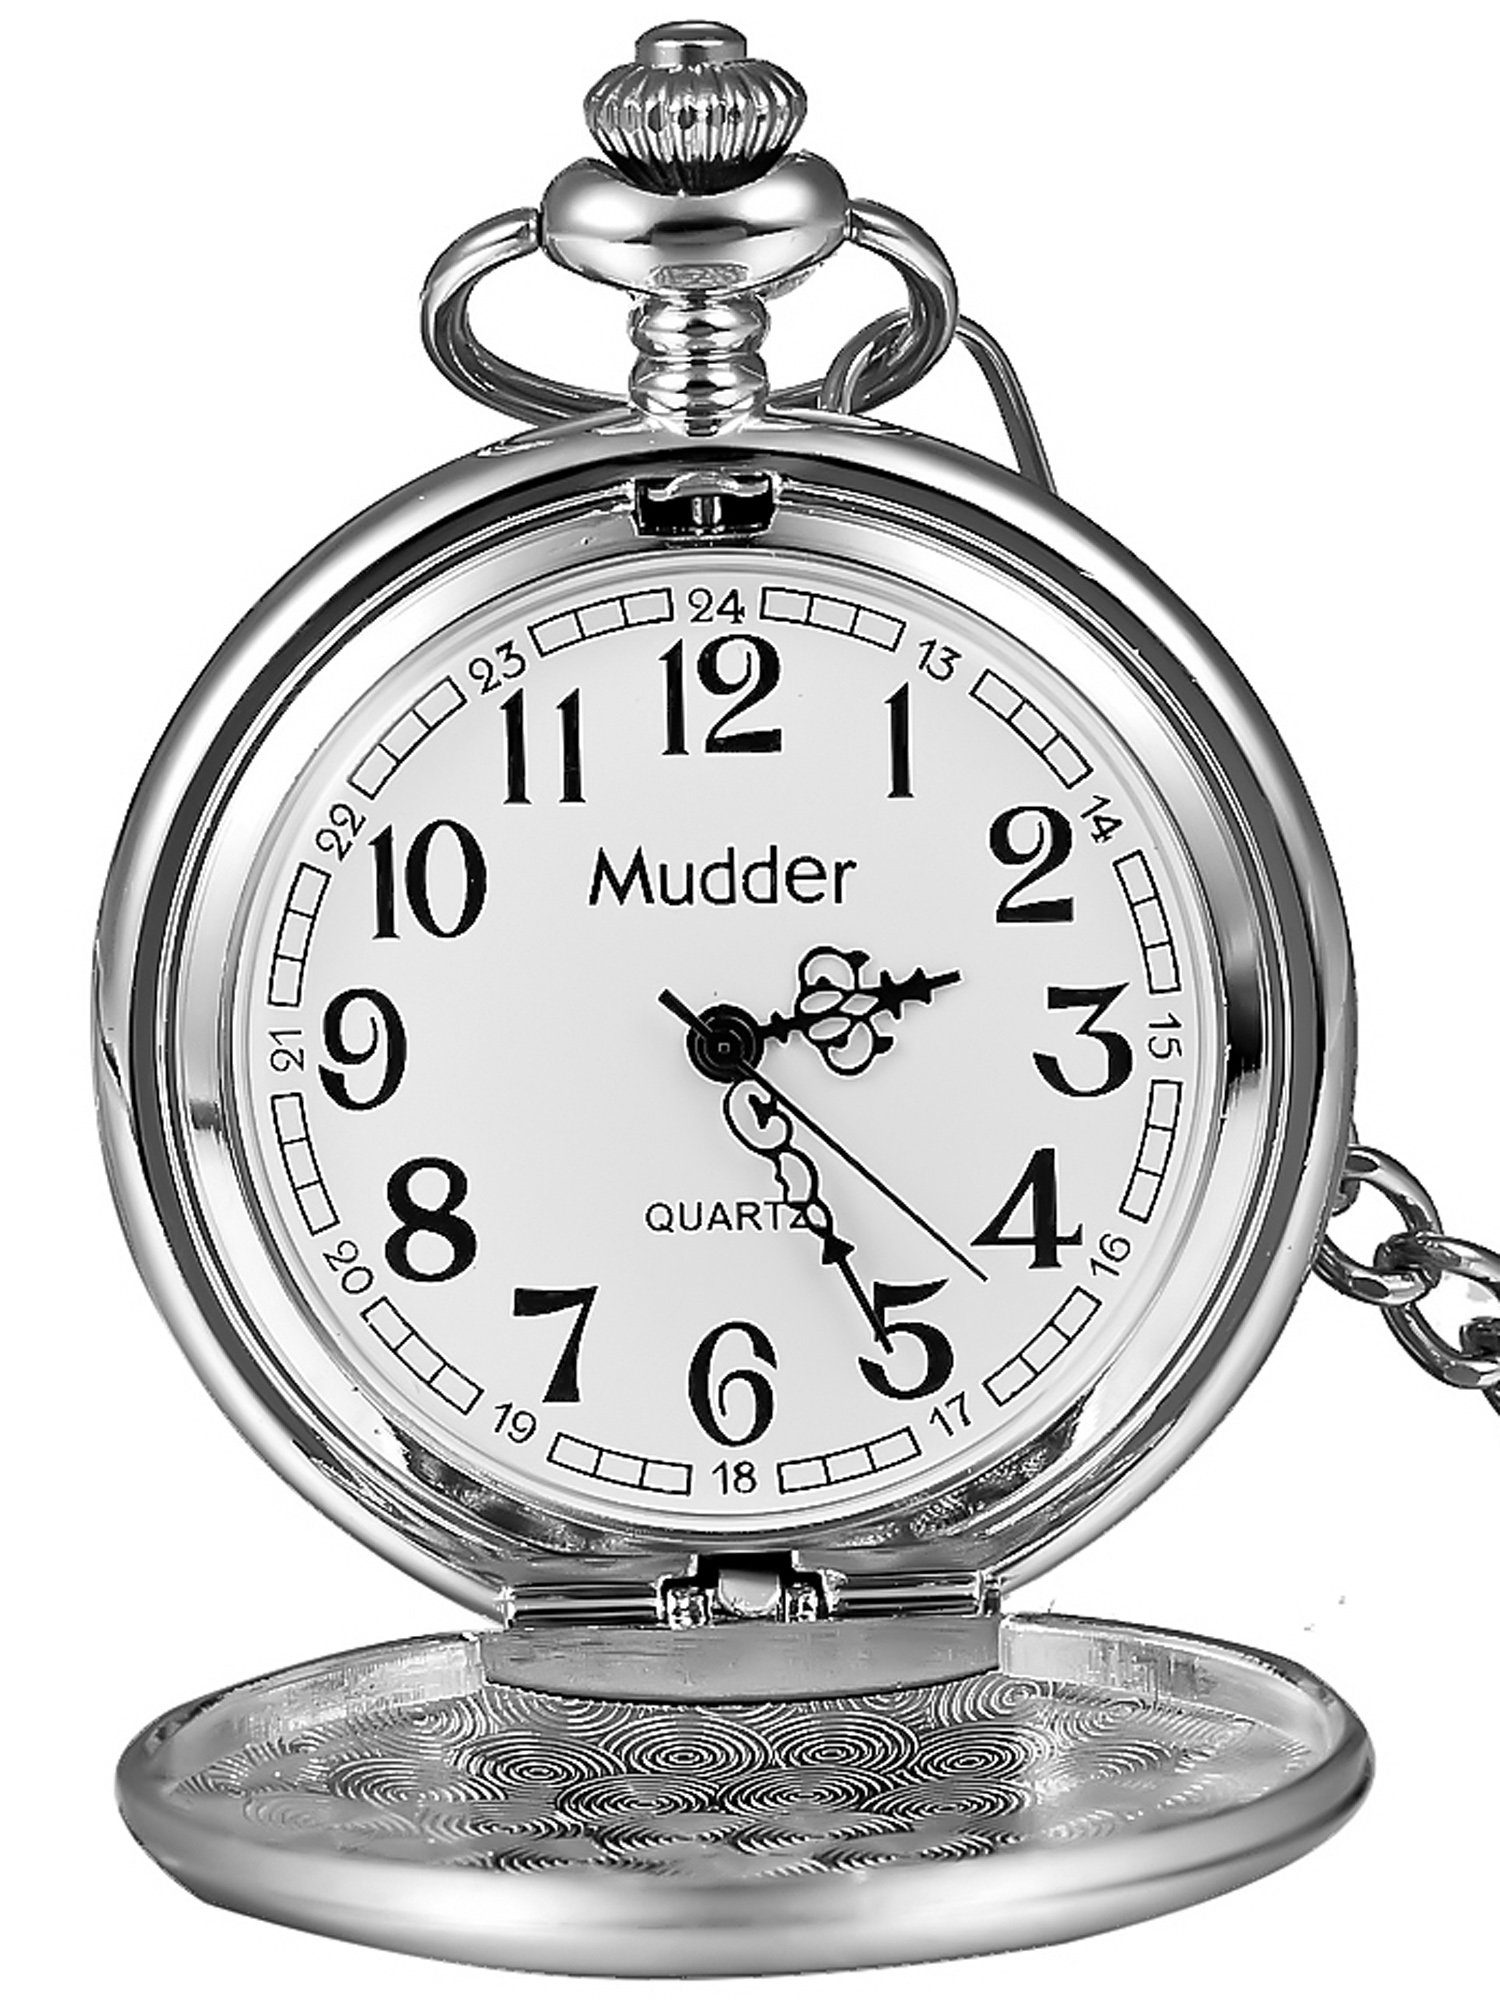 Retro Pocket Watch Necklace Refreshing And Beneficial To The Eyes Jewelry & Watches Necklace Watches